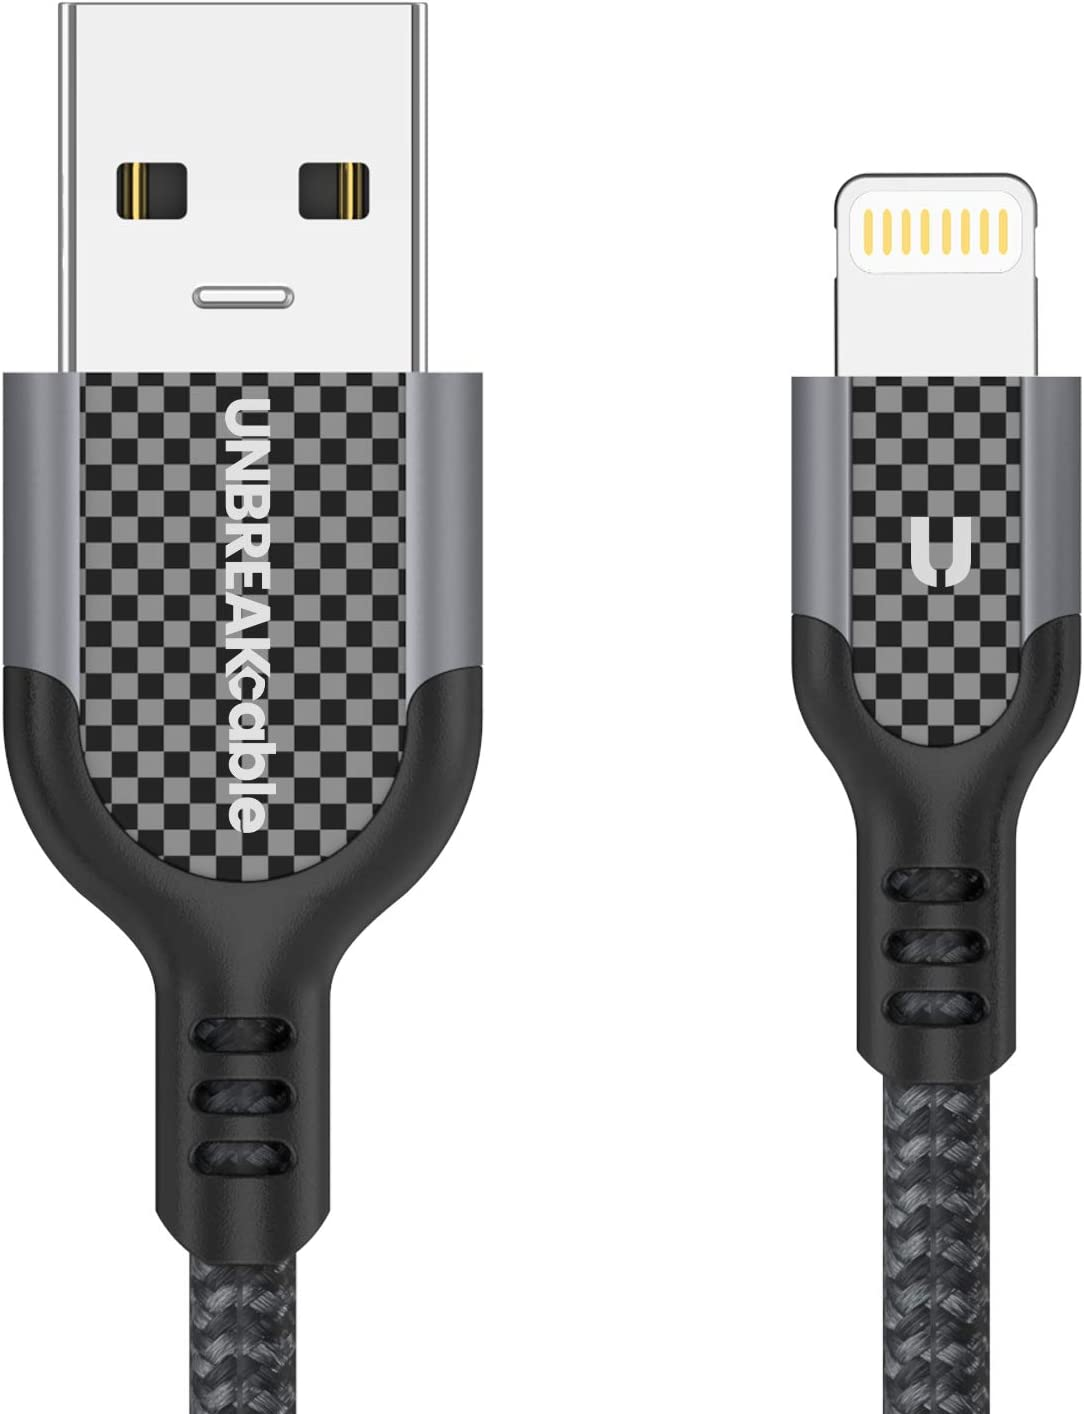 UNBREAKcable Charging Cable for iPhone 35,000 Bends Lifespan MFi Certified Softer Nylon Braided,1M//3.3ft,Black